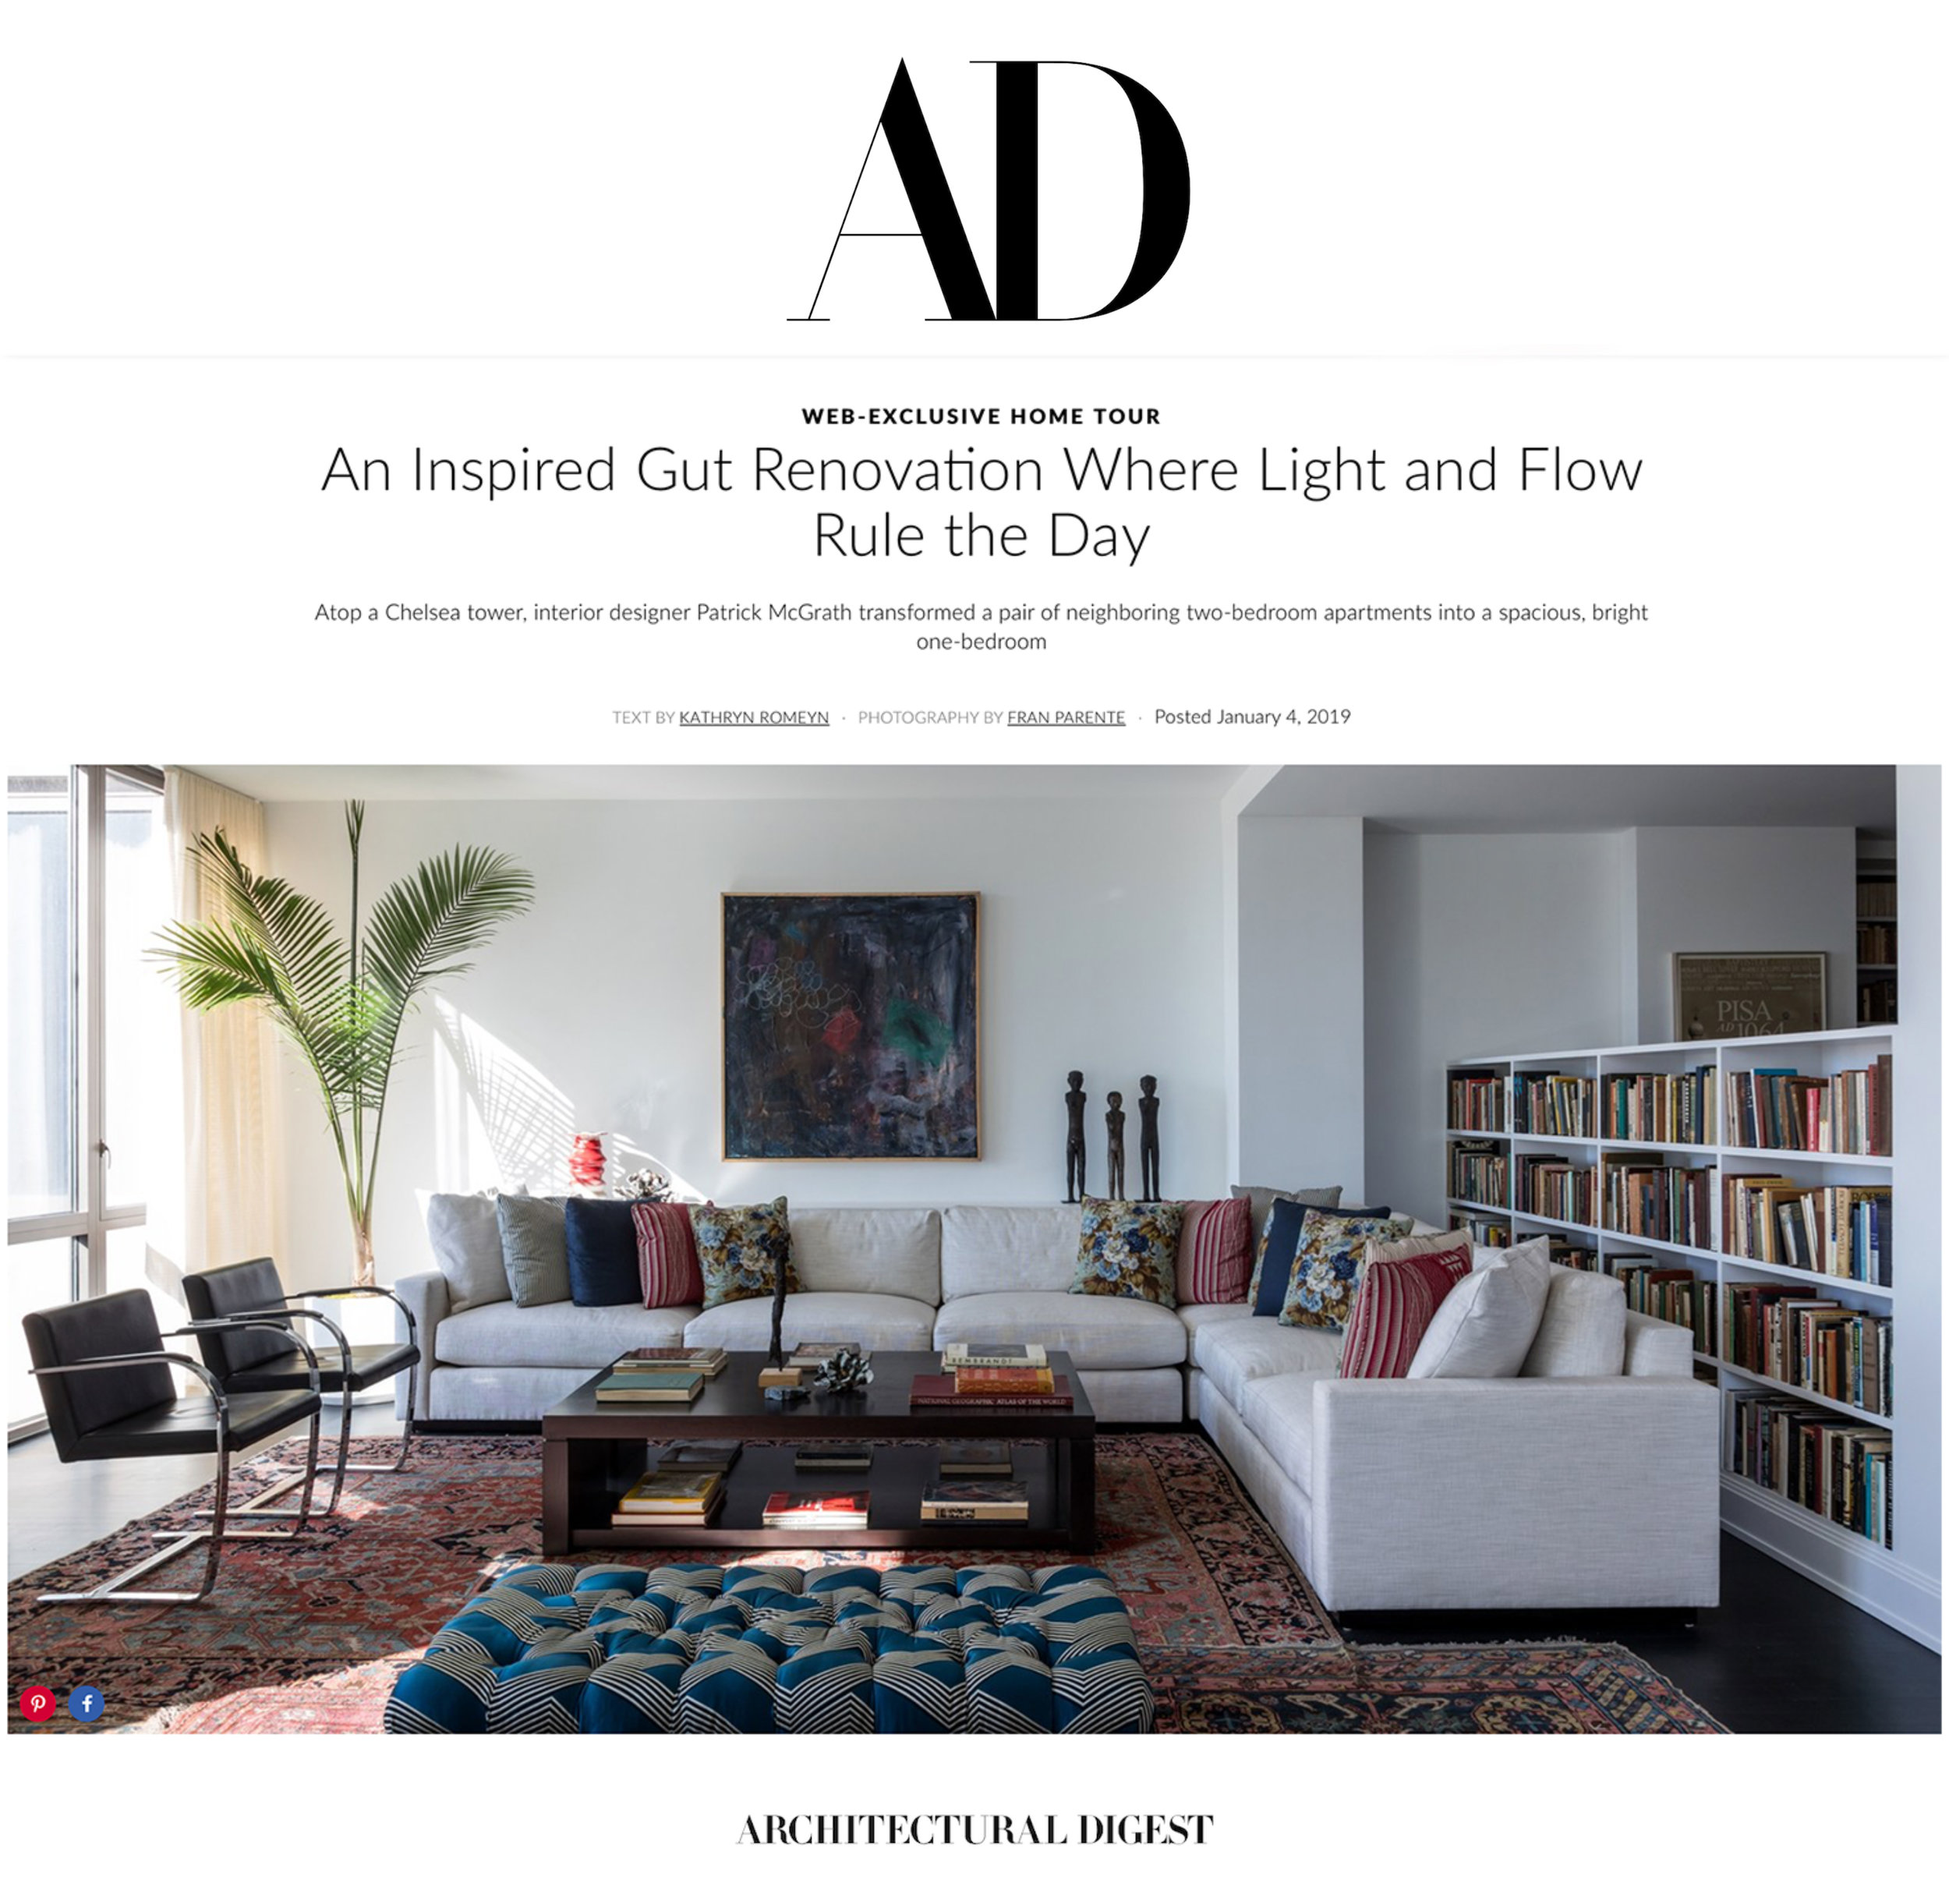 ARCHITECTURAL DIGEST, JANUARY 2019